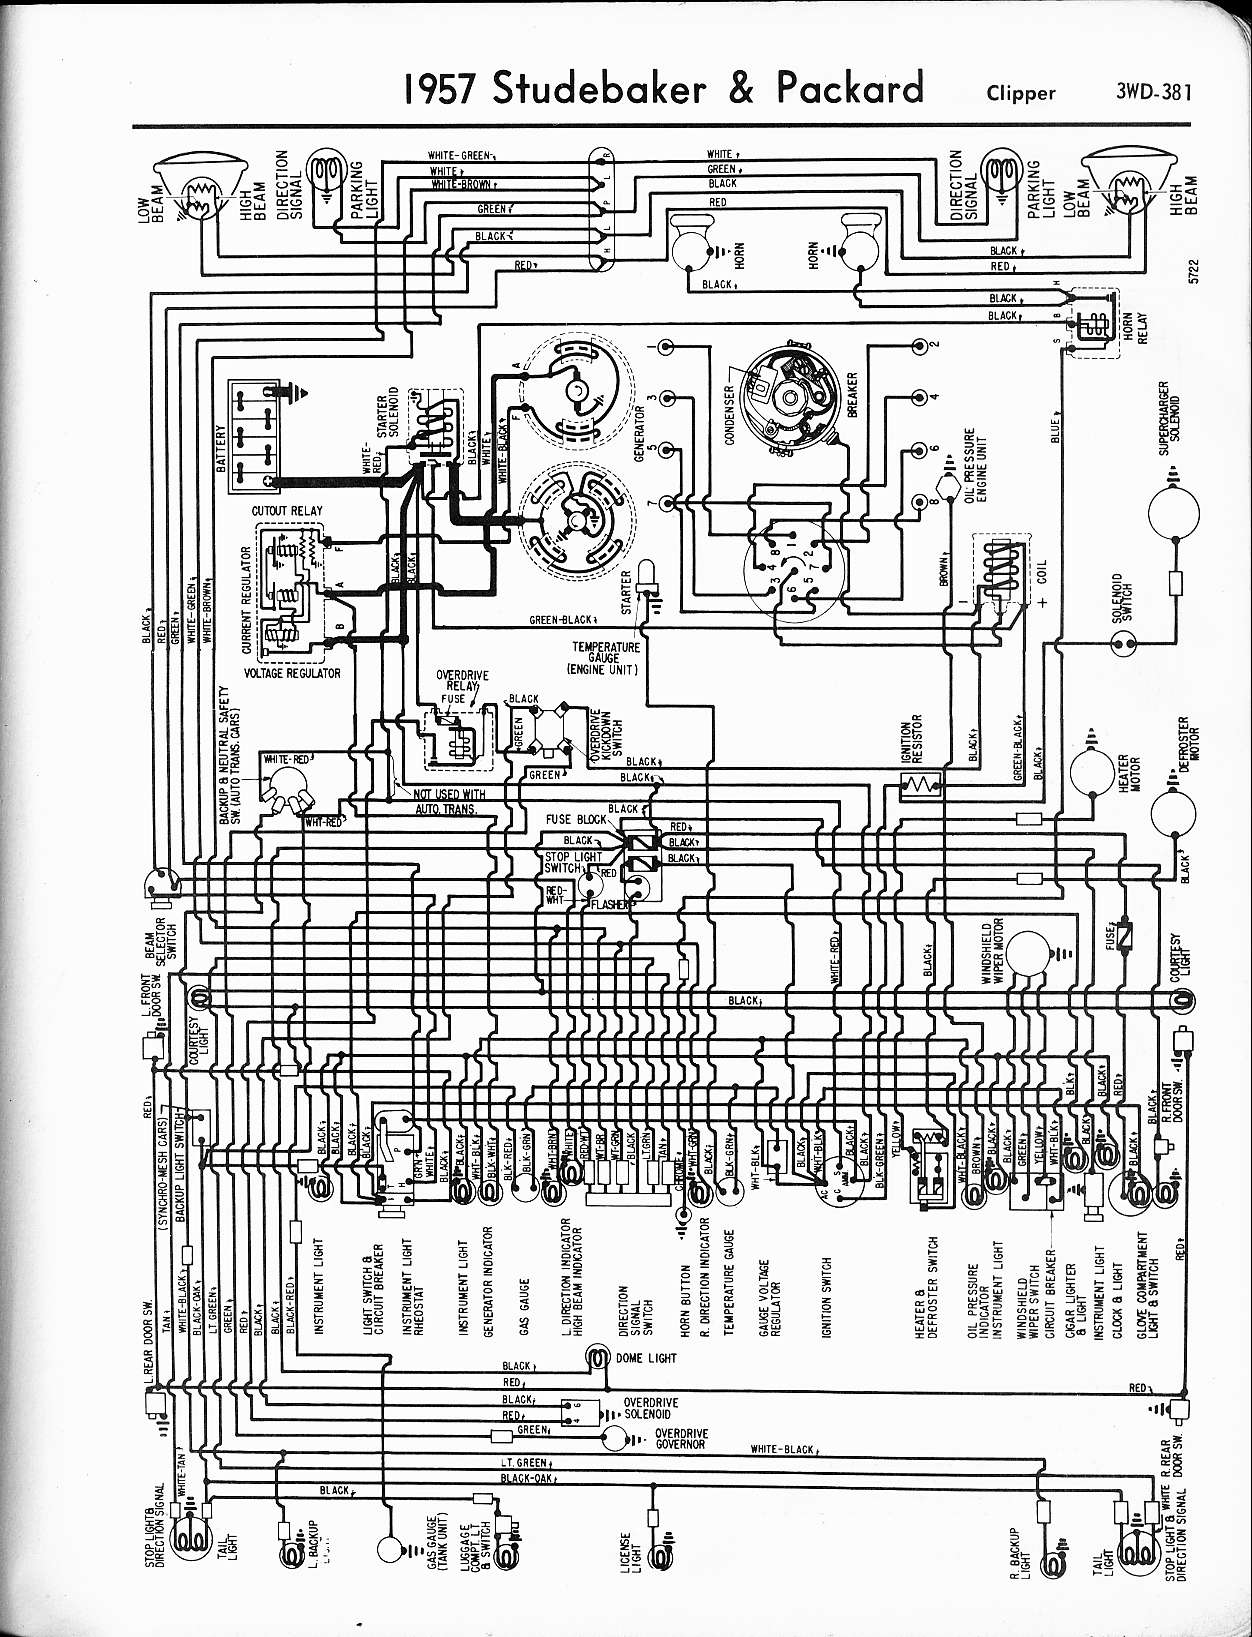 MWire5765 381 packard wiring diagrams the old car manual project 1955 studebaker wiring diagram at webbmarketing.co